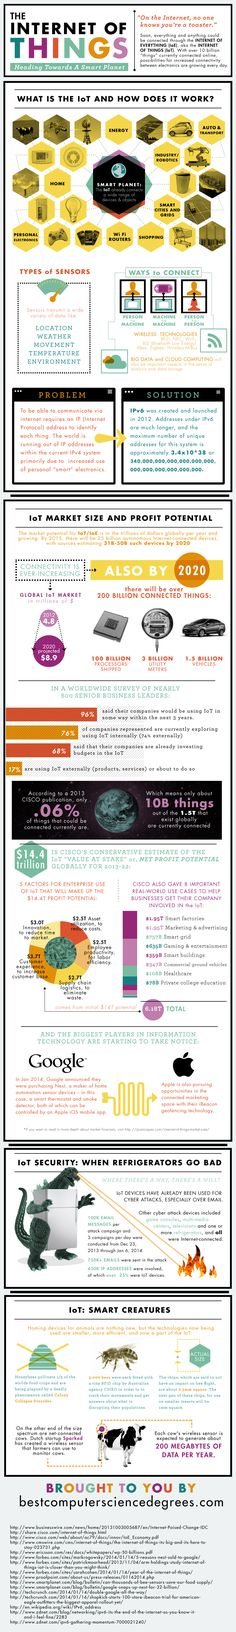 The Internet of Things (IoT) explained quickly by infographic. Image courtesy of Best Computer Science Degrees Big Data, Data Science, Computer Science, Computer Programming, Quantified Self, It Management, Connect Online, Cloud Computing, Information Technology